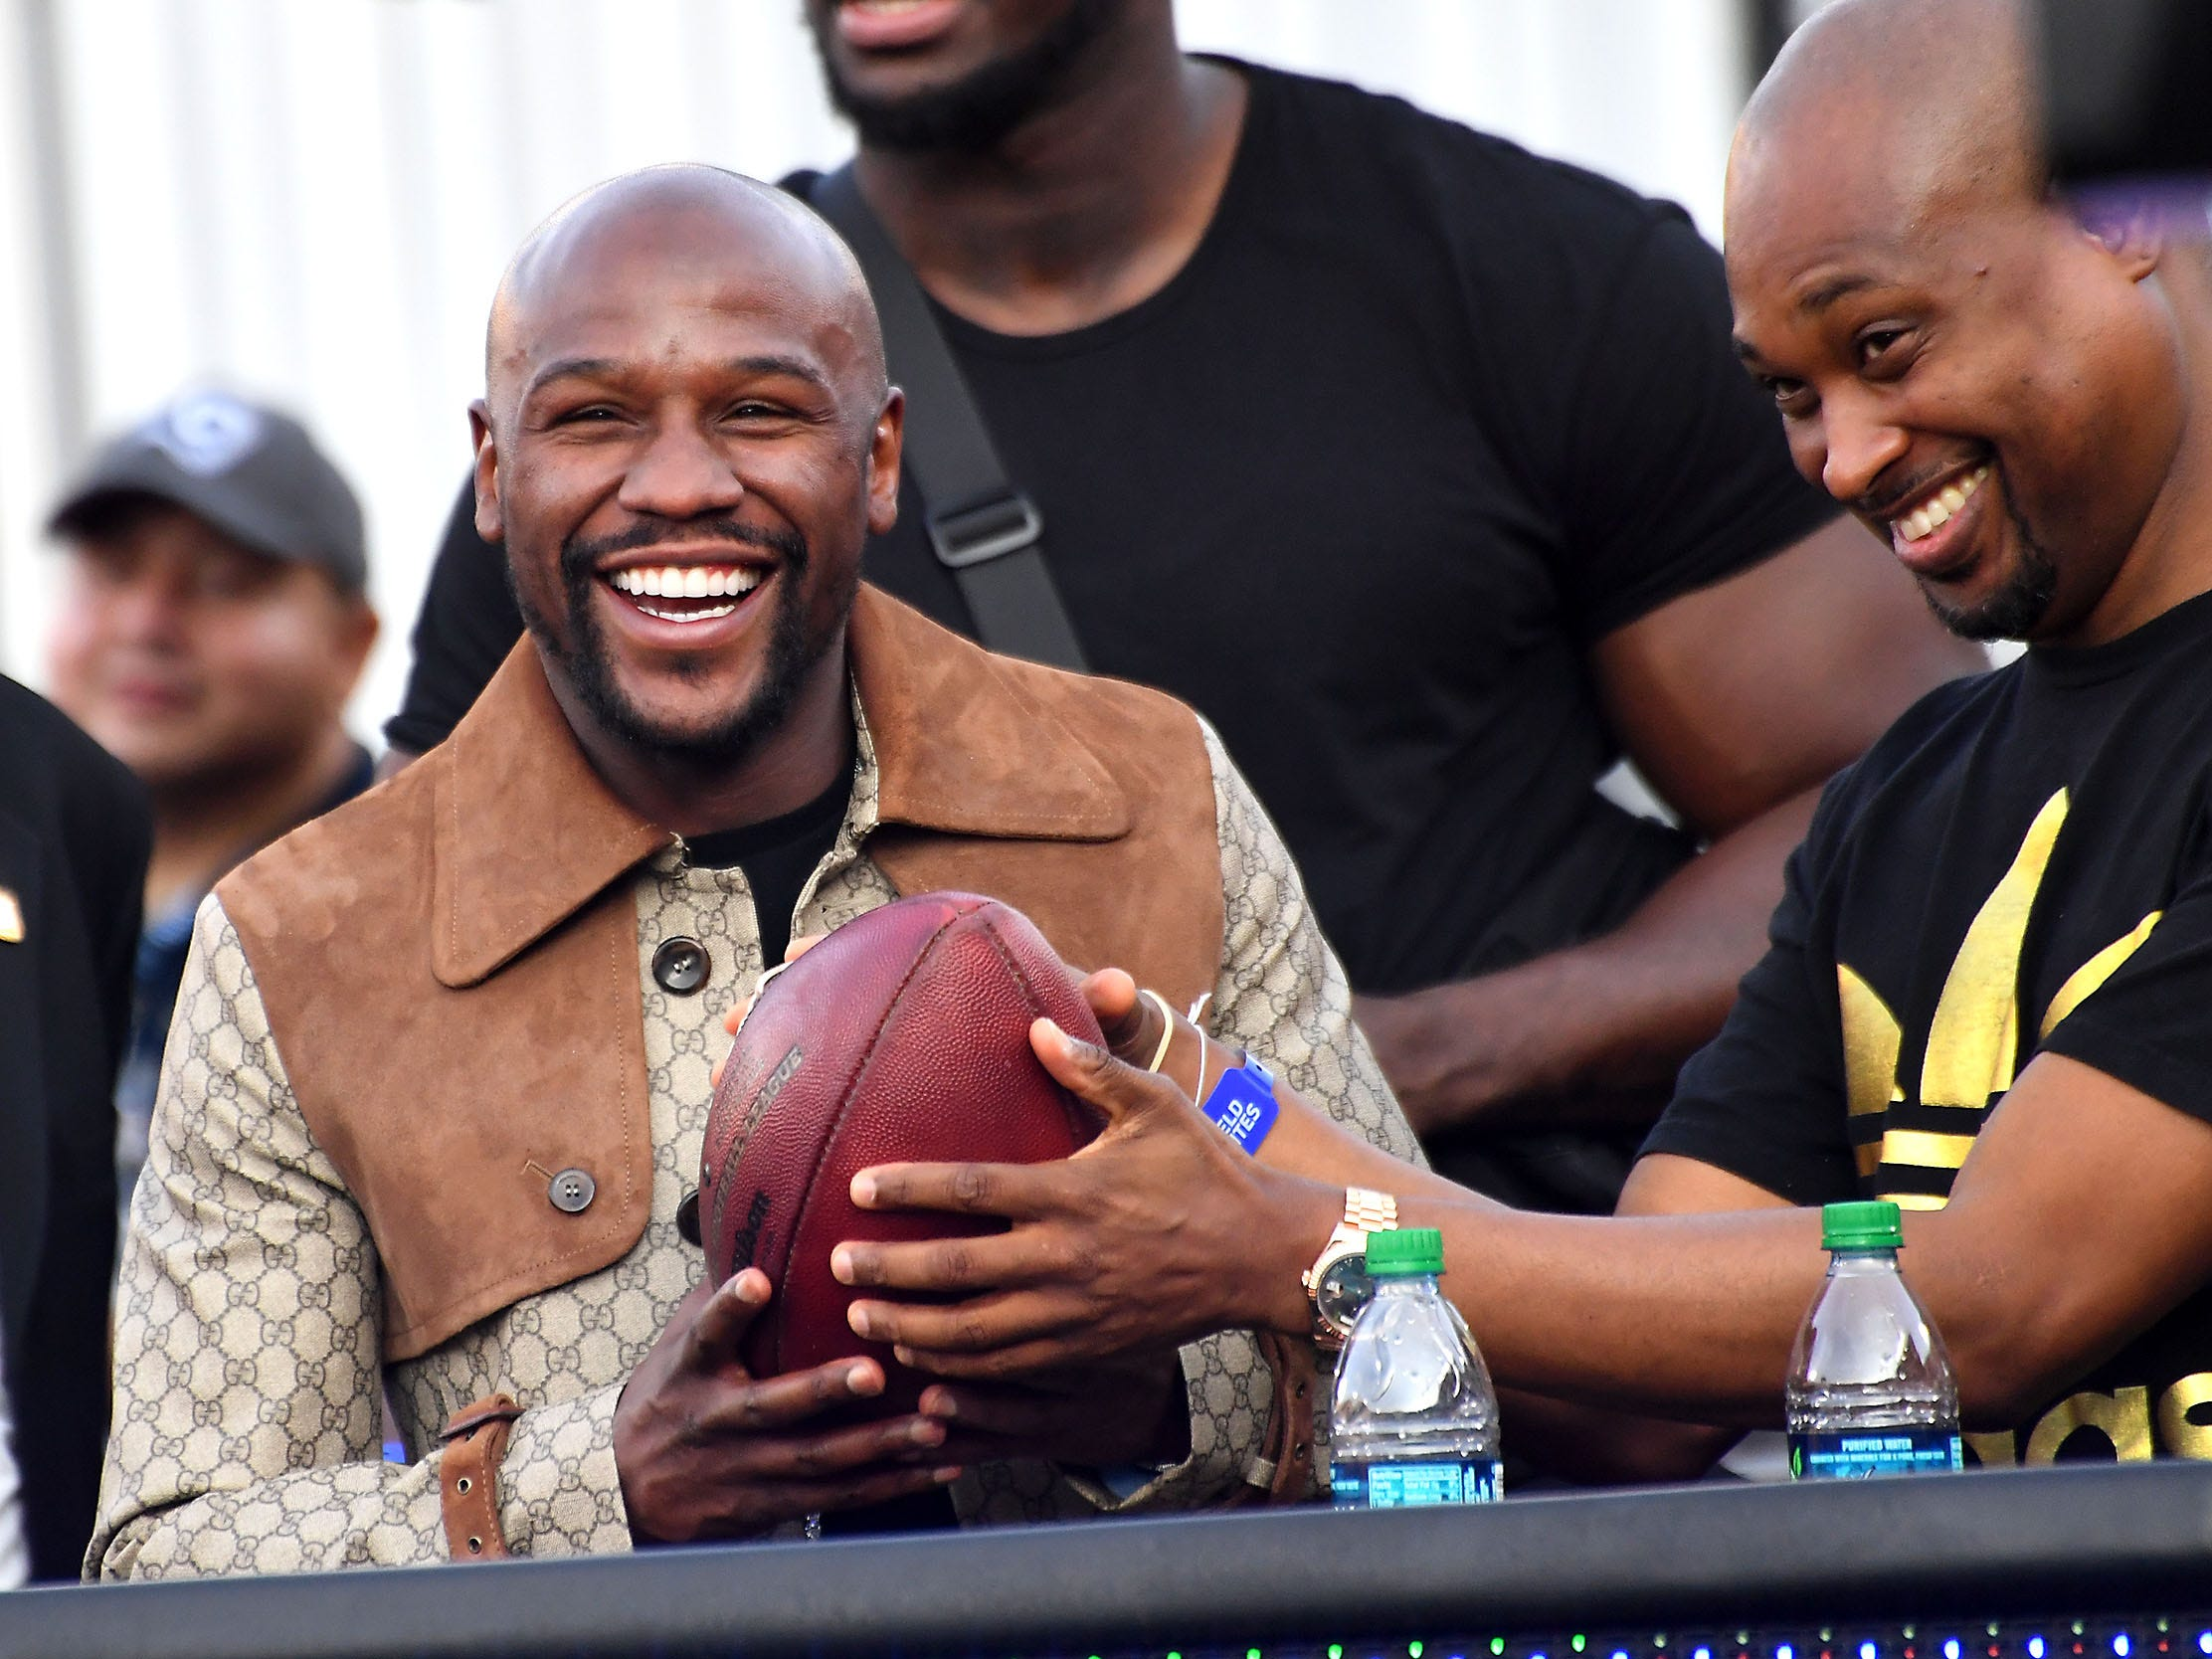 Floyd Mayweather Jr. smiles after Seattle Seahawks wide receiver Tyler Lockett handed him the ball he caught for a touchdown in the second half of the game against the Los Angeles Rams at the Memorial Coliseum.